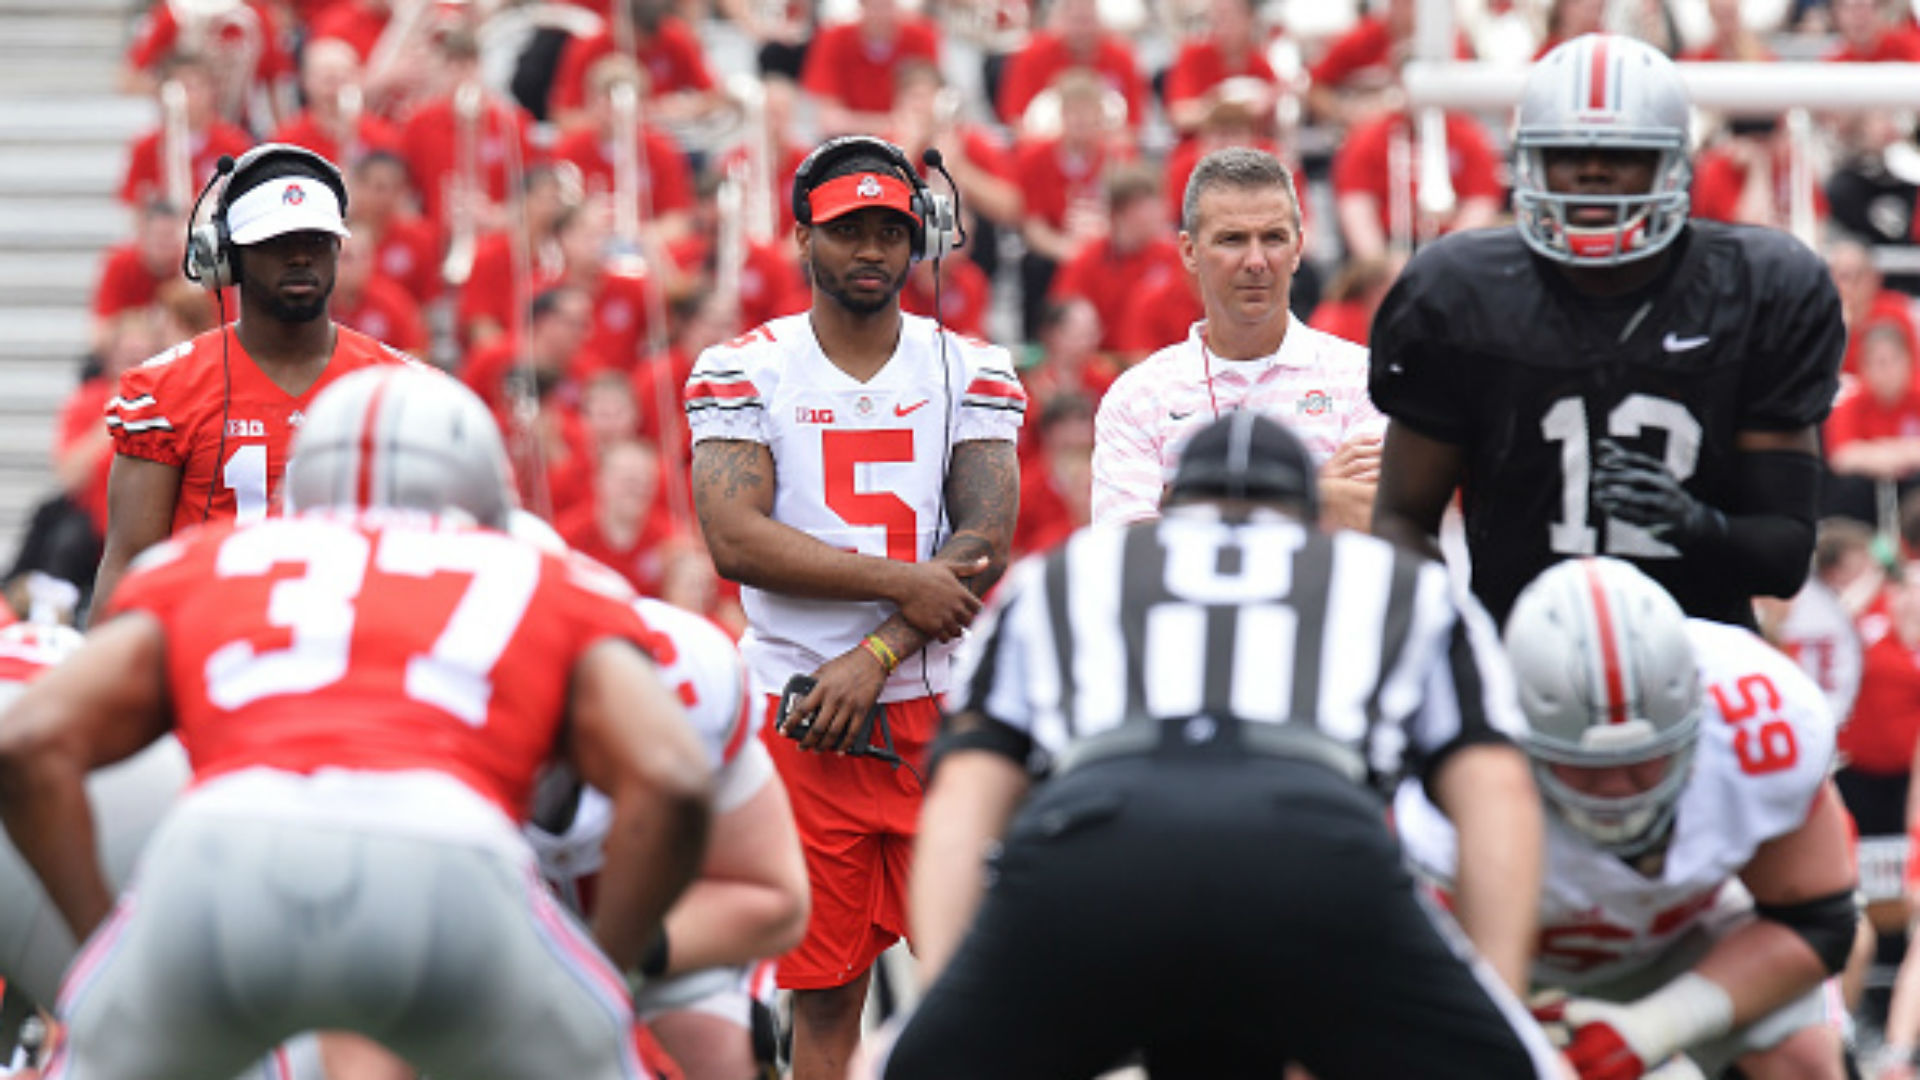 Three things we learned from Ohio State's spring game